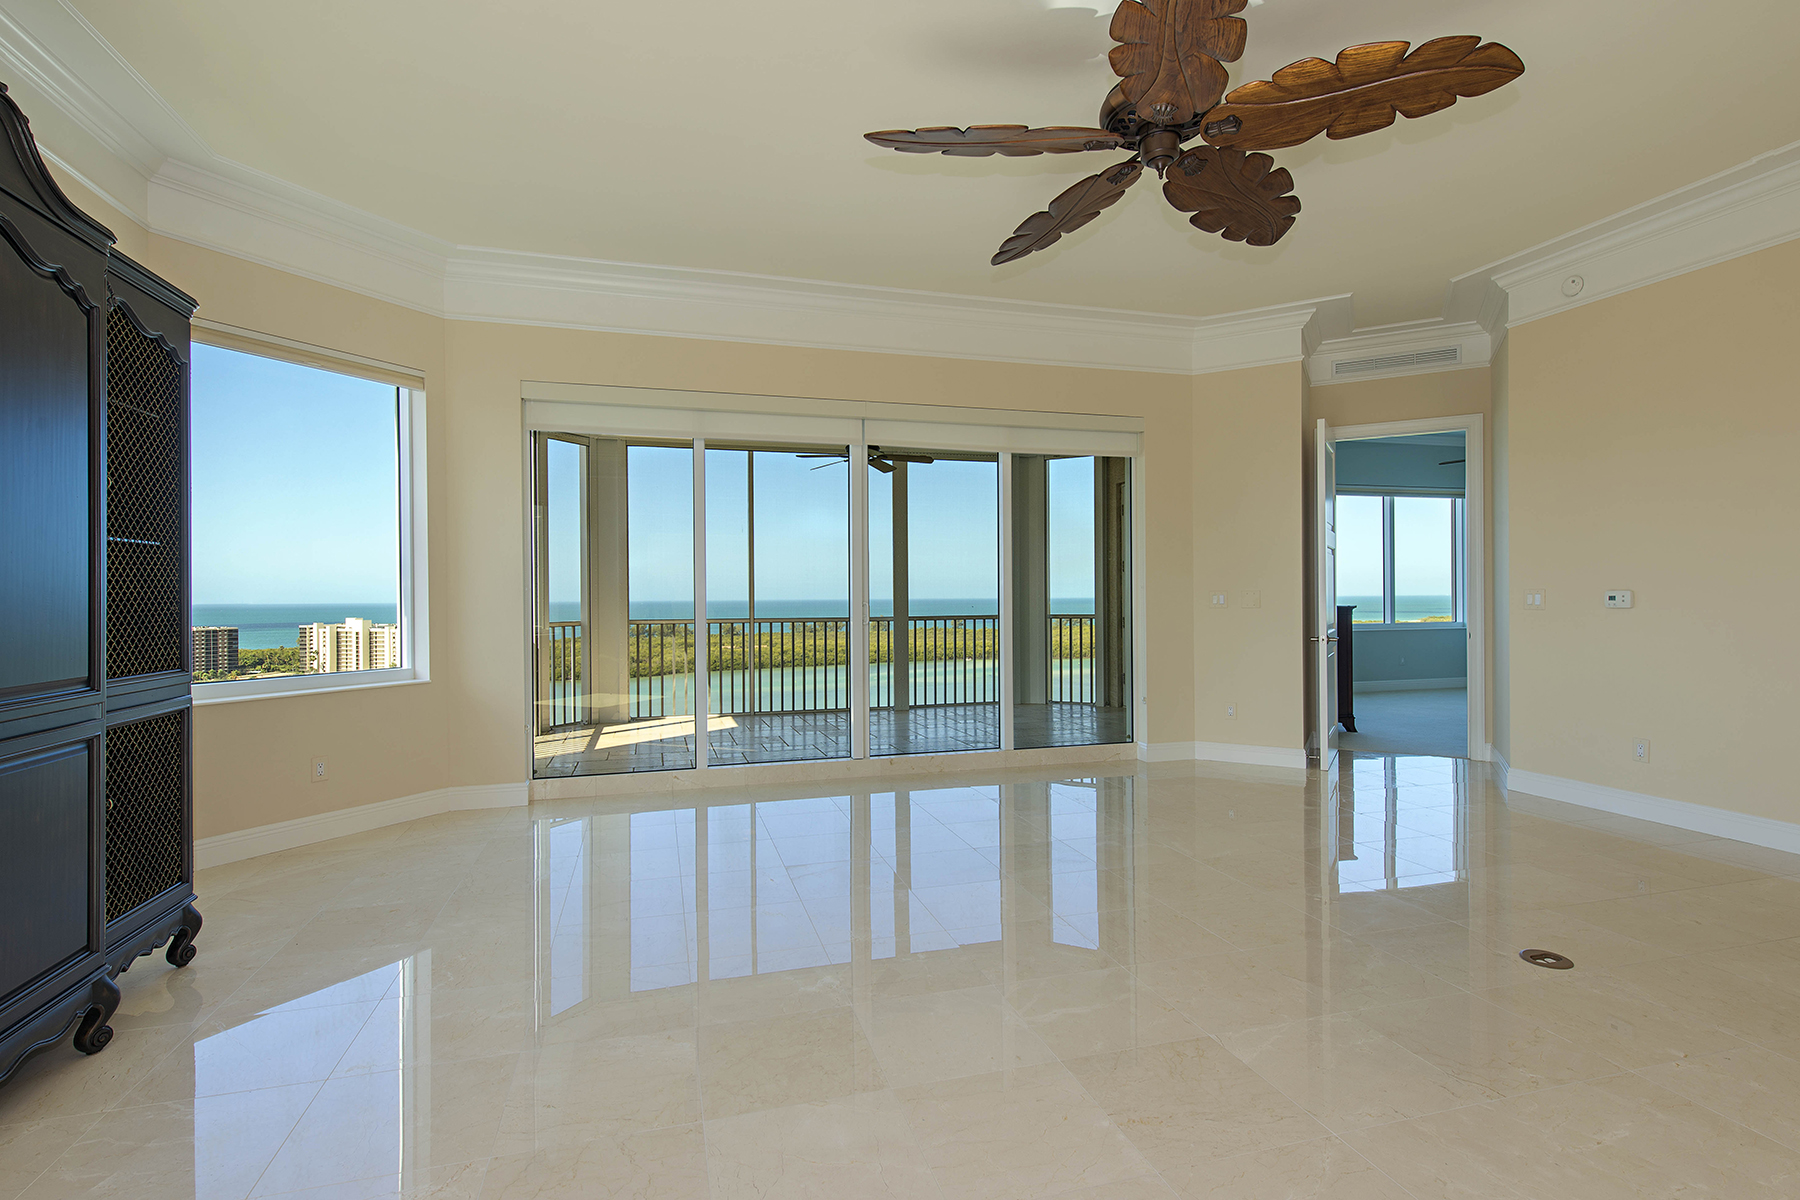 Condominium for Sale at THE DUNES - GRANDE GENEVA 265 Indies Way PH-1 Naples, Florida, 34110 United States